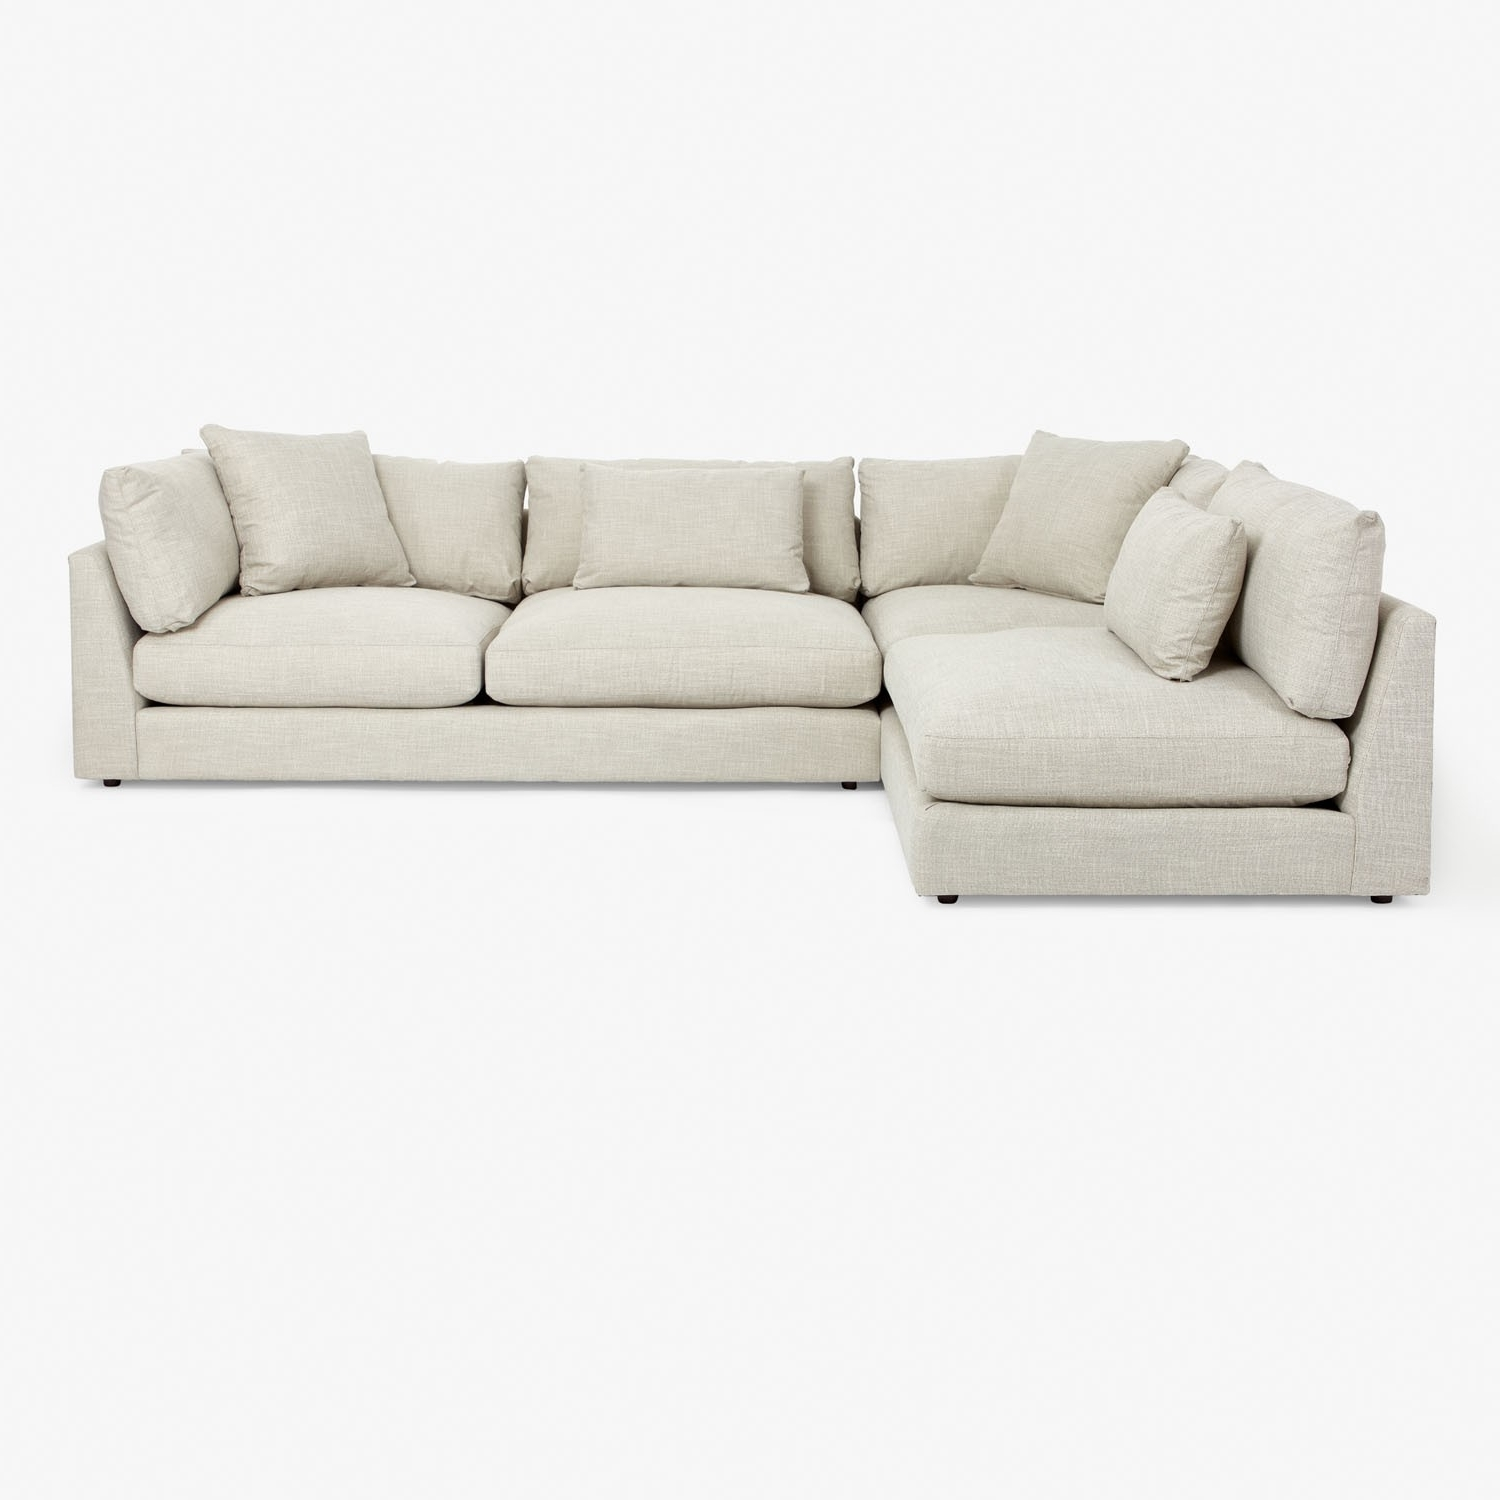 Best 20 Of Modern Sectional Sofas